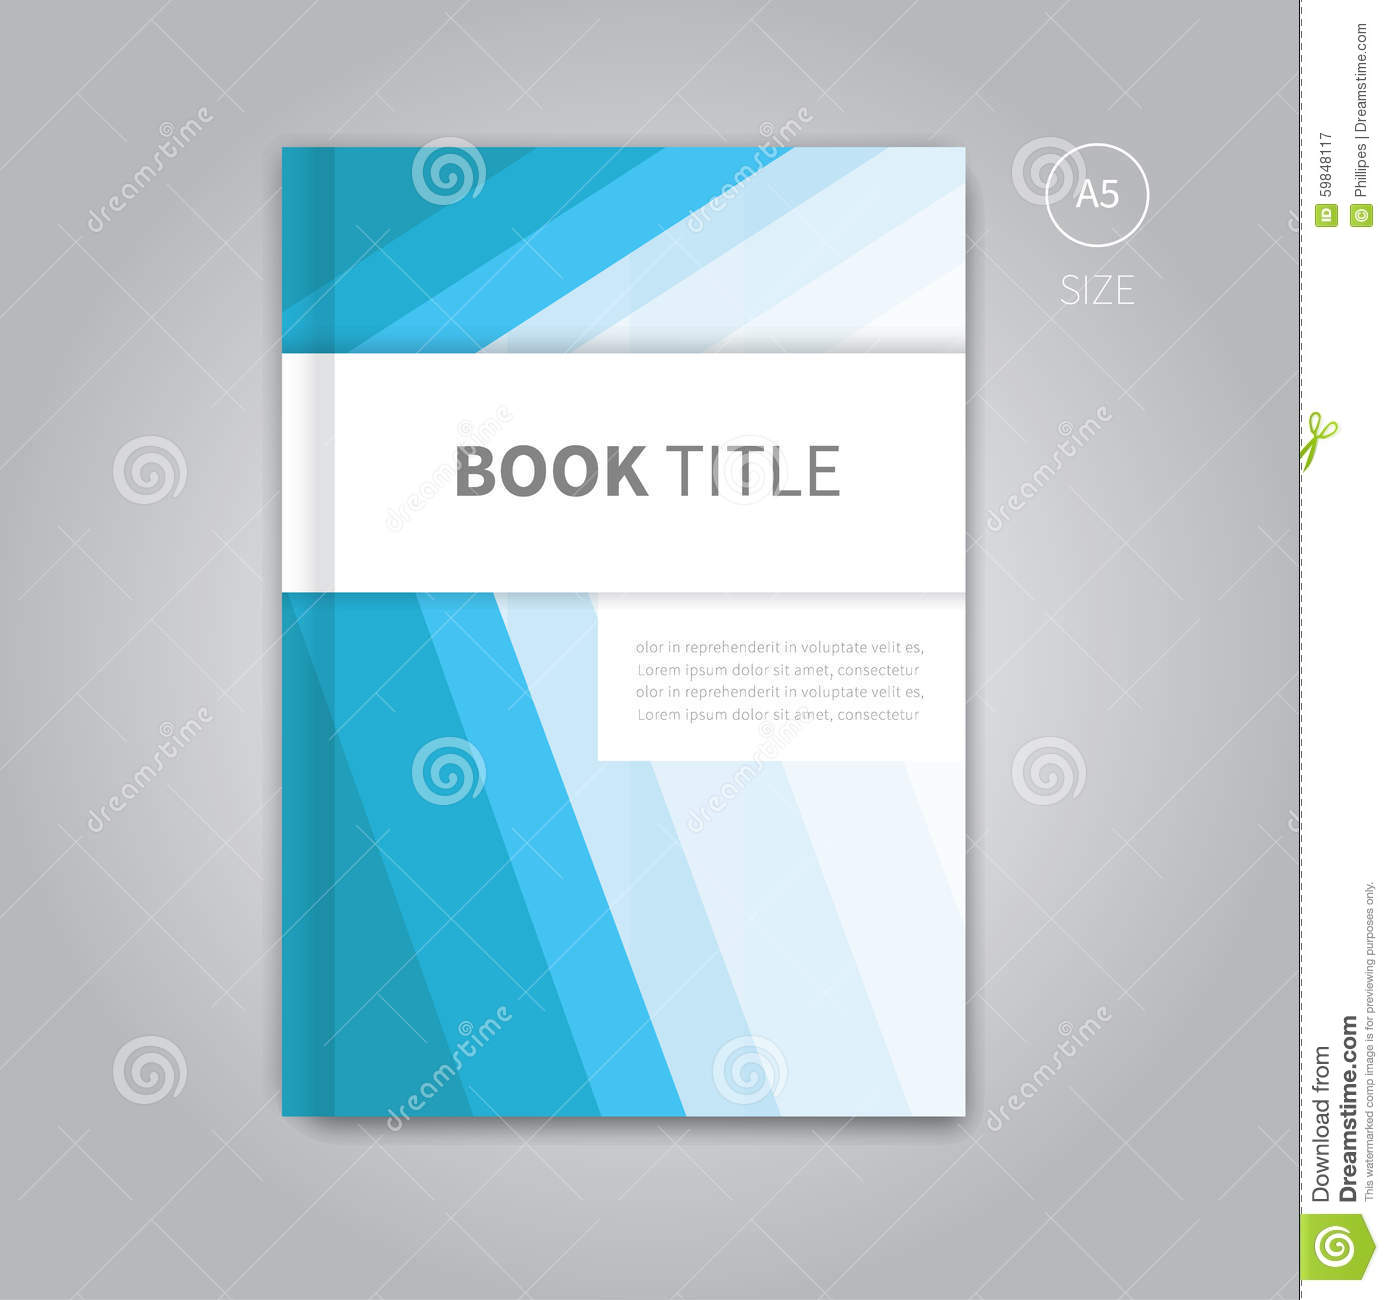 vector book cover template design stock vector illustration of